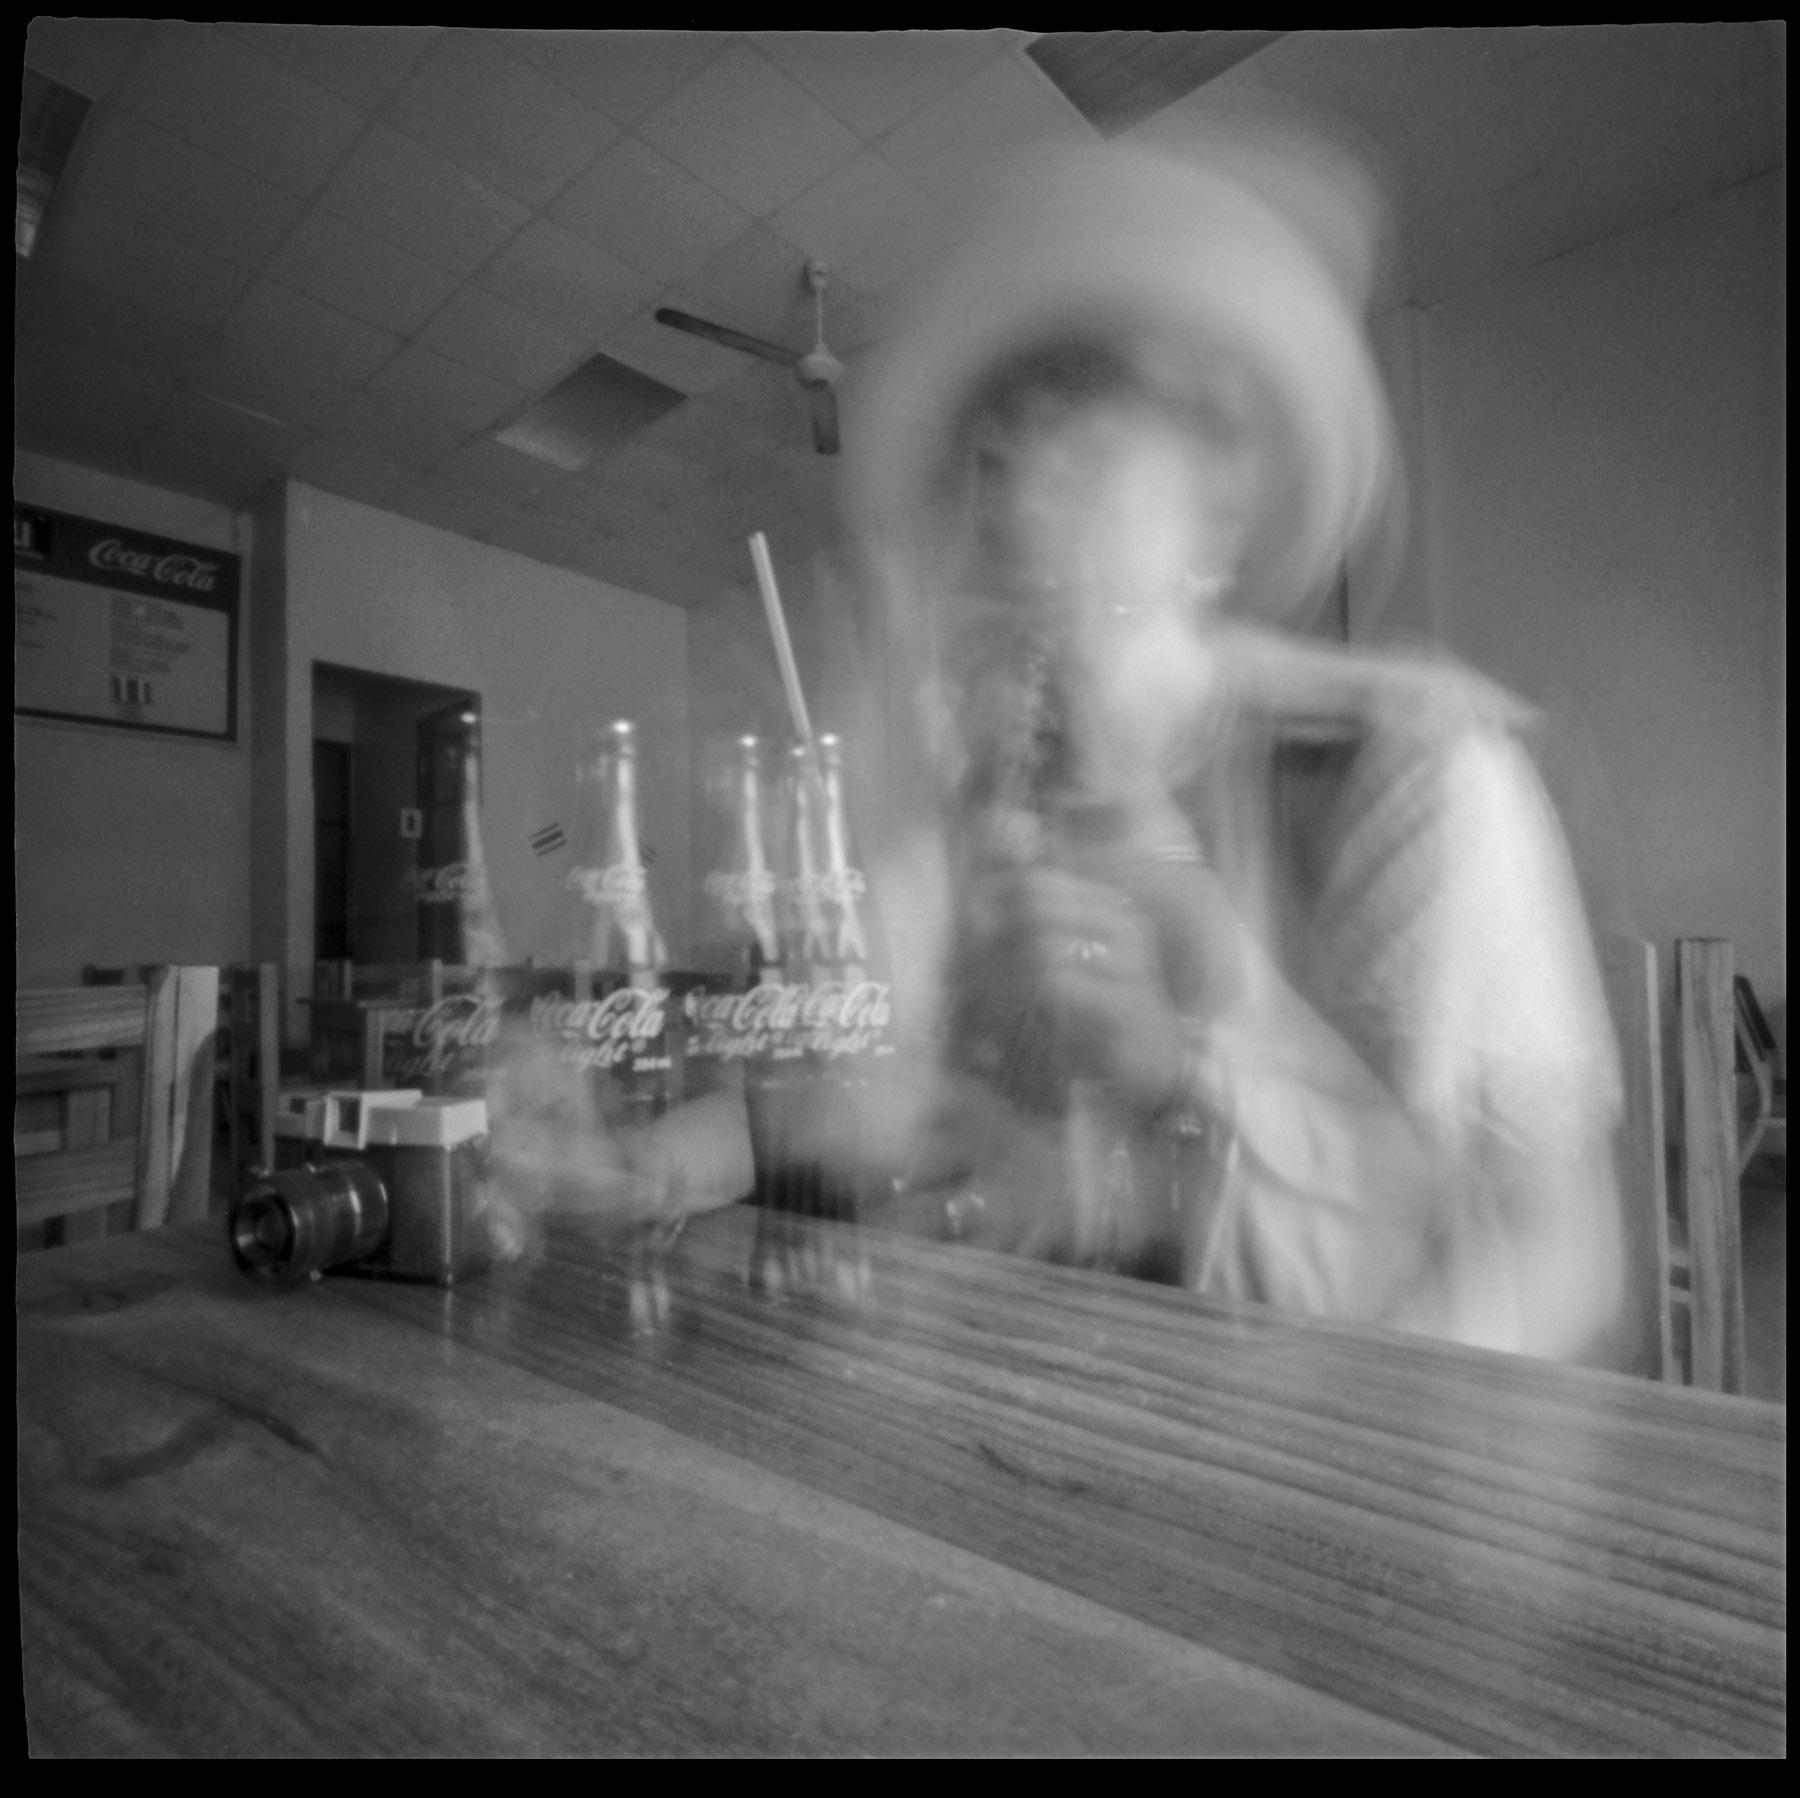 Nancy_Breslin_Pinhole Diary of Eating Out_1-15-16 Soda in Puerto Limon Costa Rica 1 minute_6.jpg